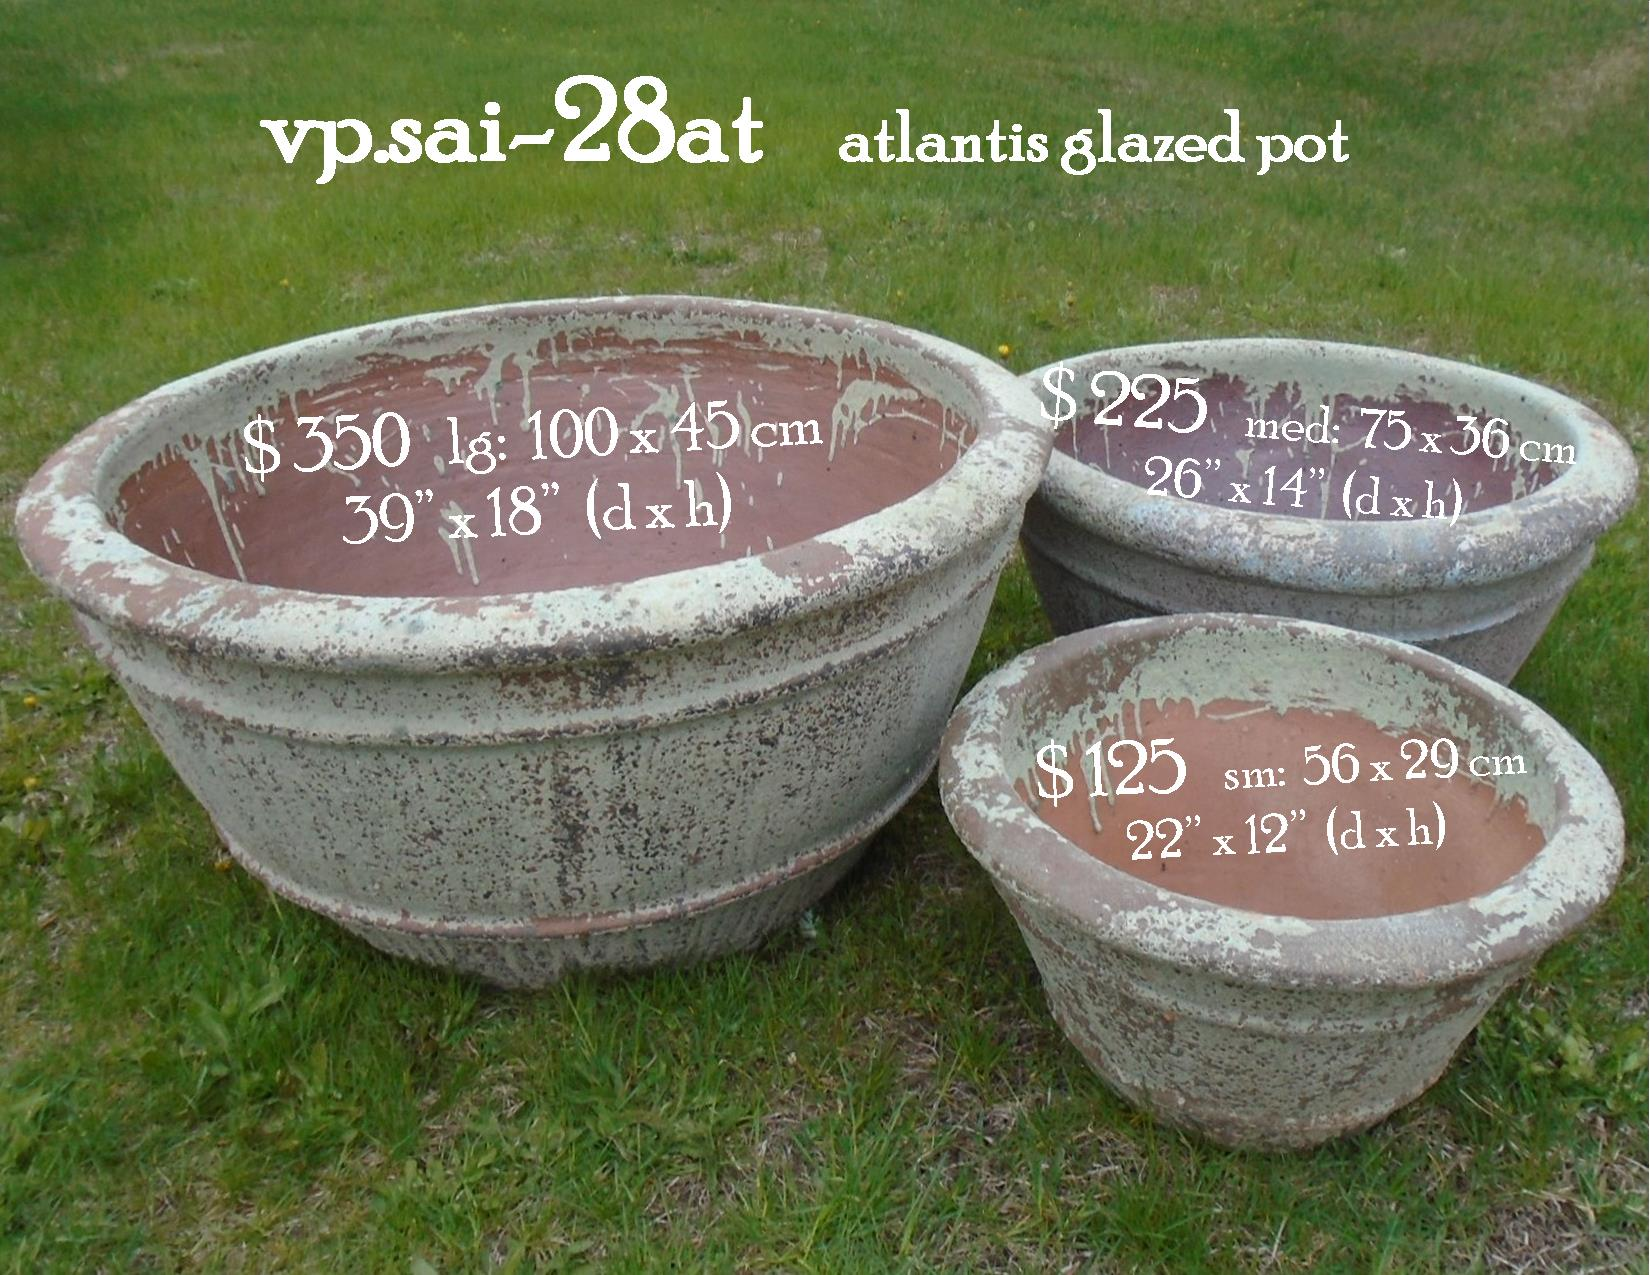 vp.sai-28at    atlantis glazed pot